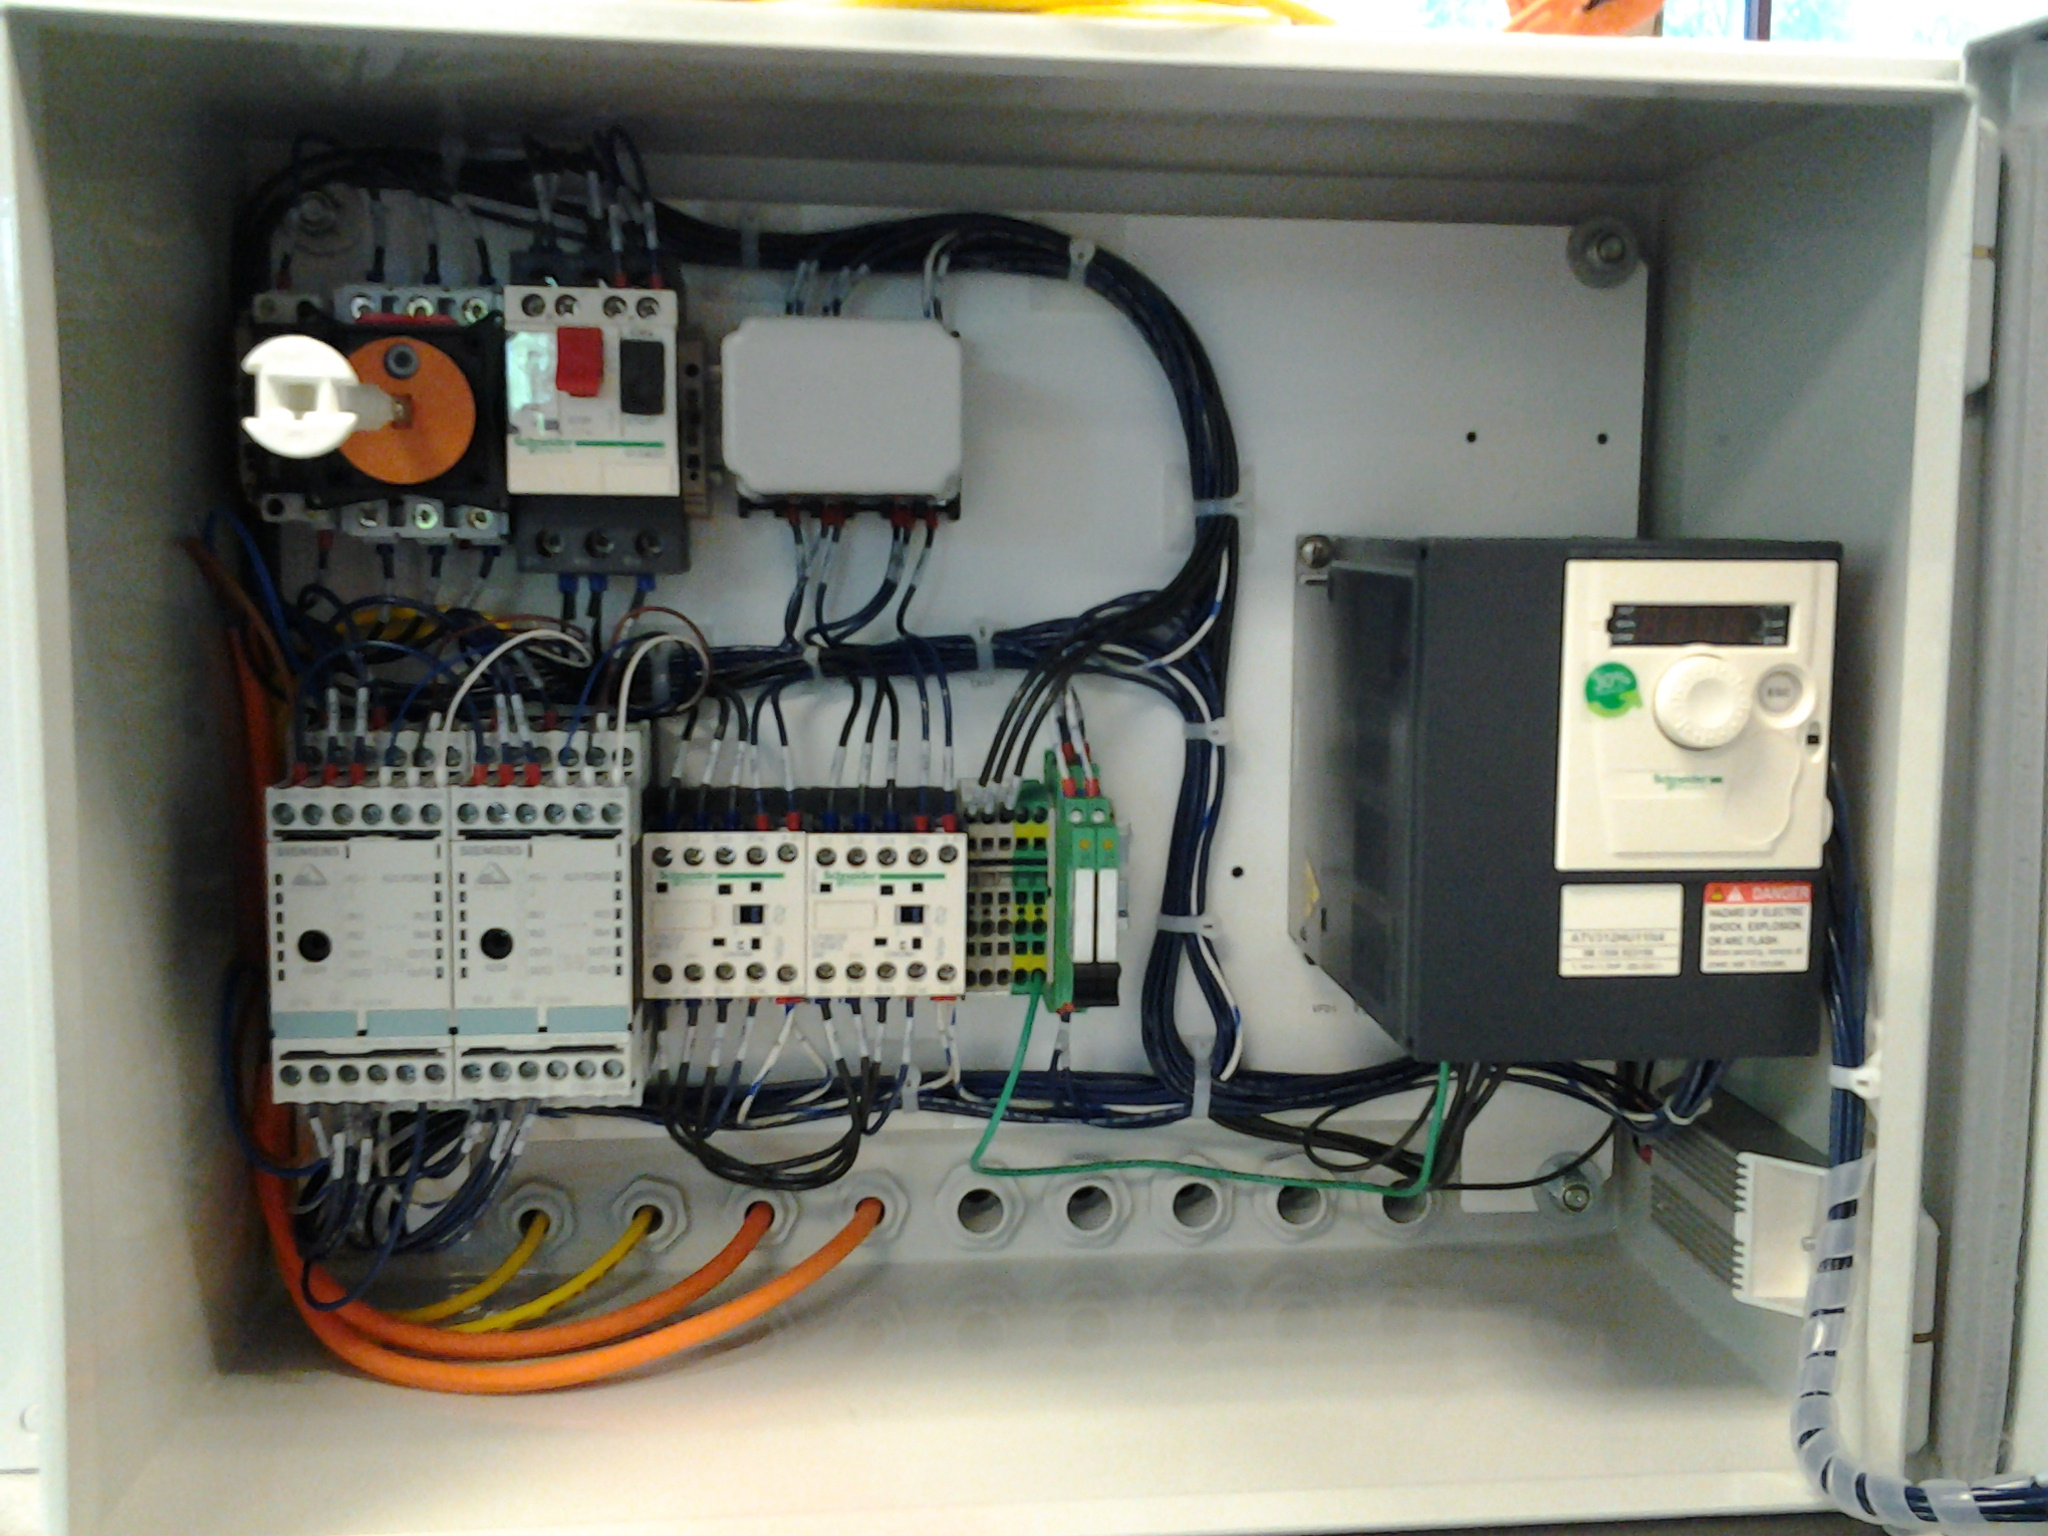 panel wiring jobs wiring diagram neat breaker panel electrical control panel wiring jobs